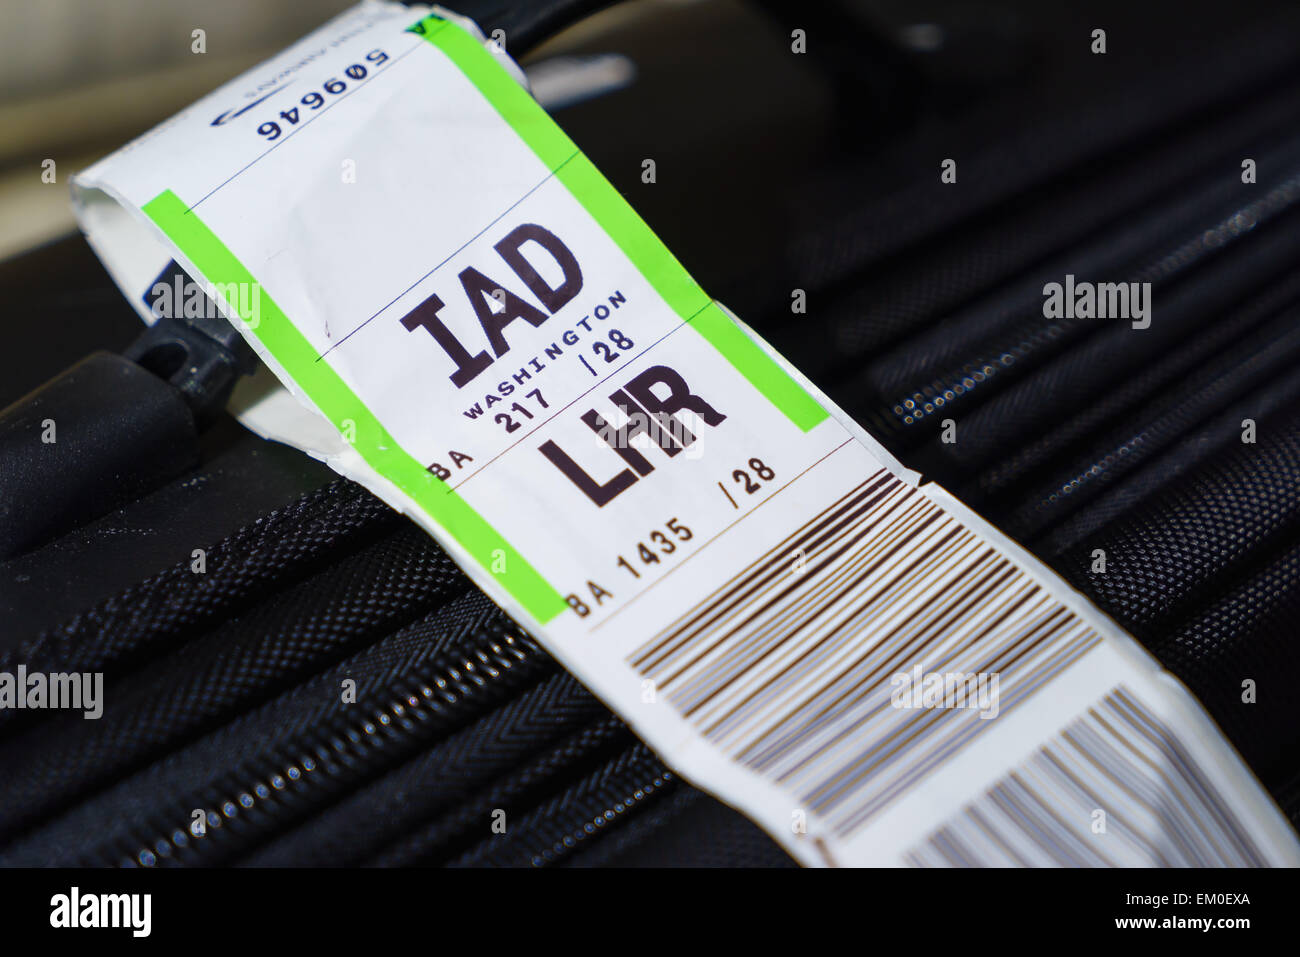 A suitcase with a airline barcode baggage tag from London Heathrow (LHR) to Washington Dulles (IAD). - Stock Image